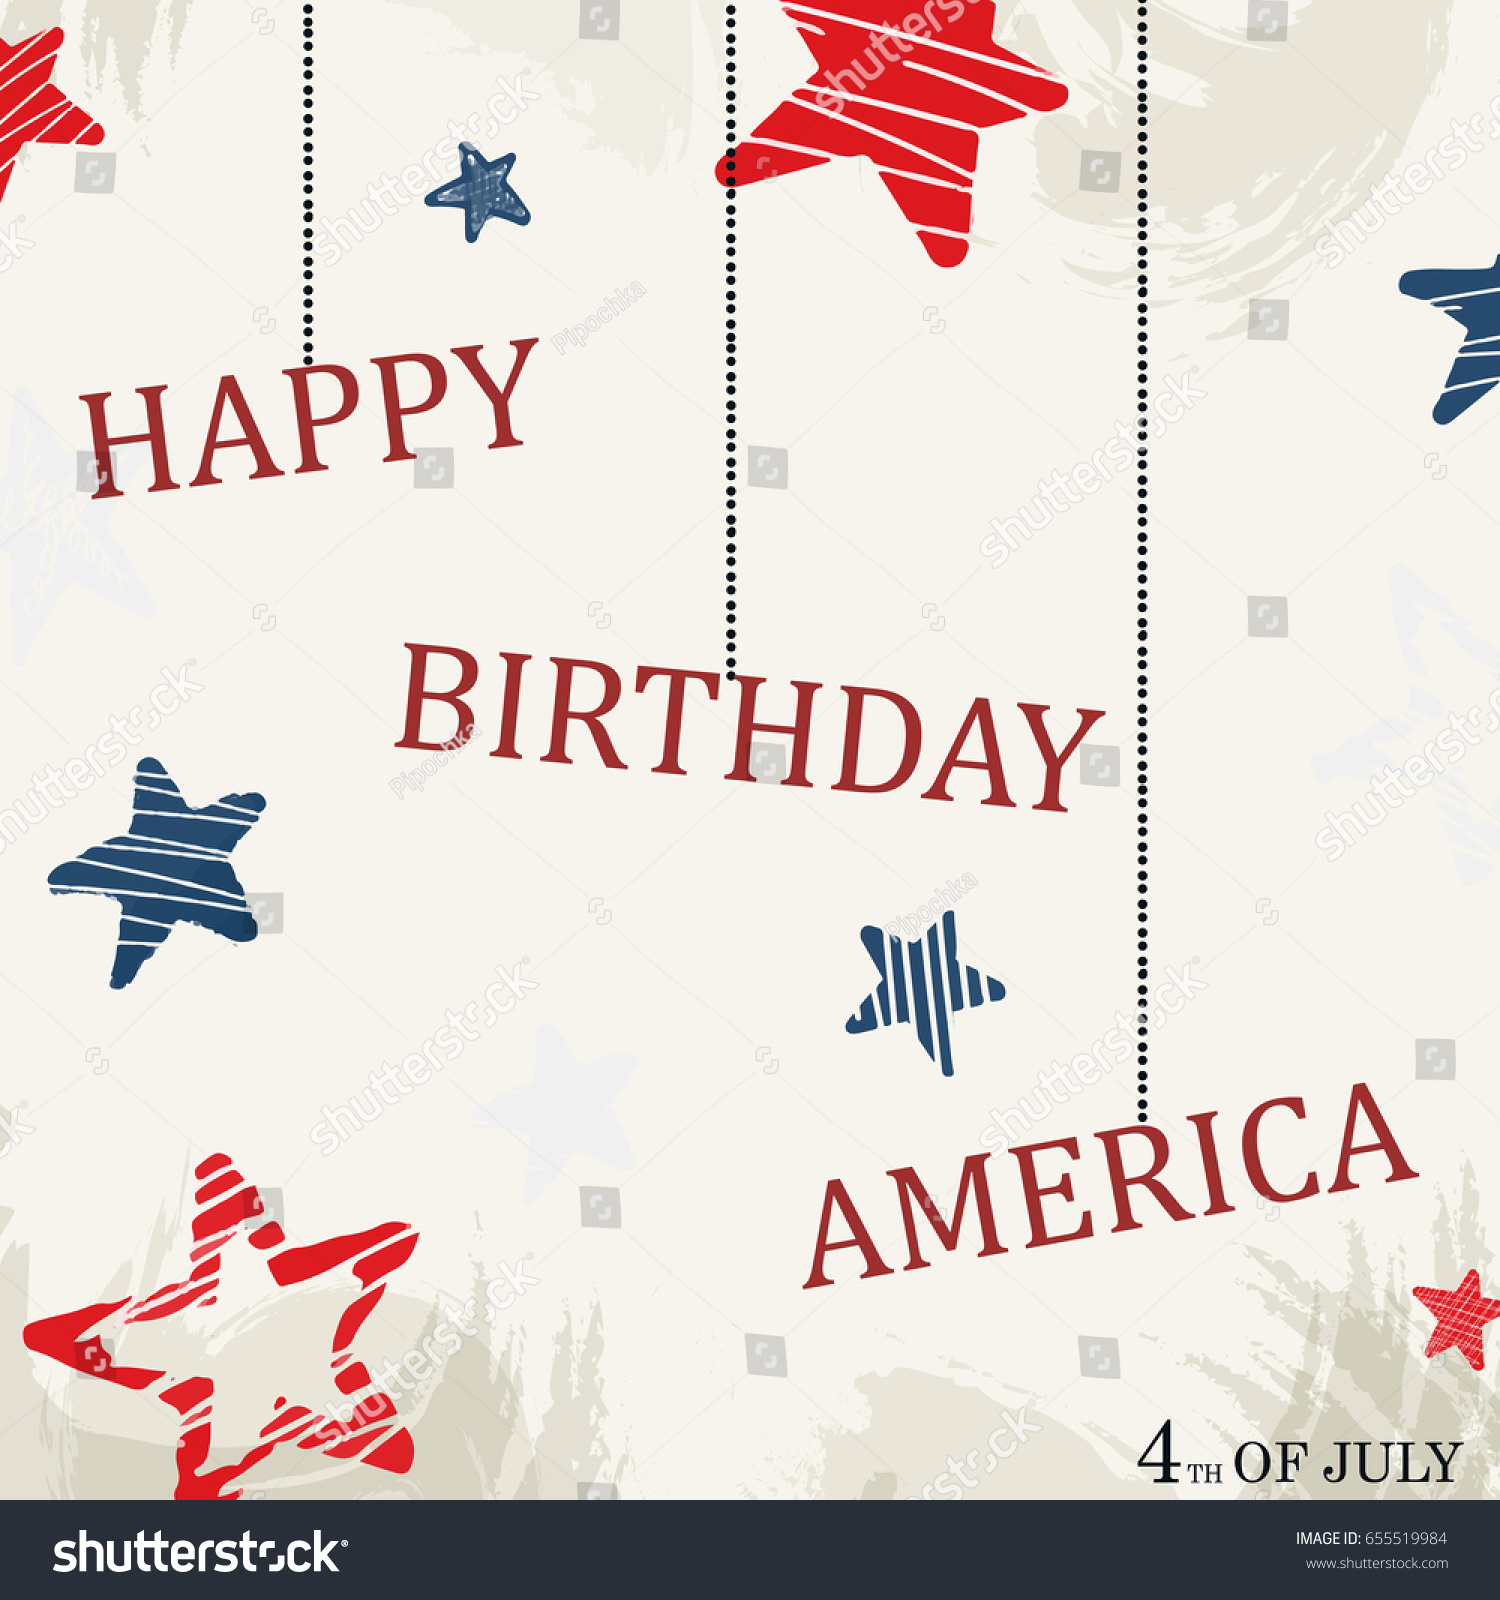 Happy Birthday America Template Background Usa Stock Vector